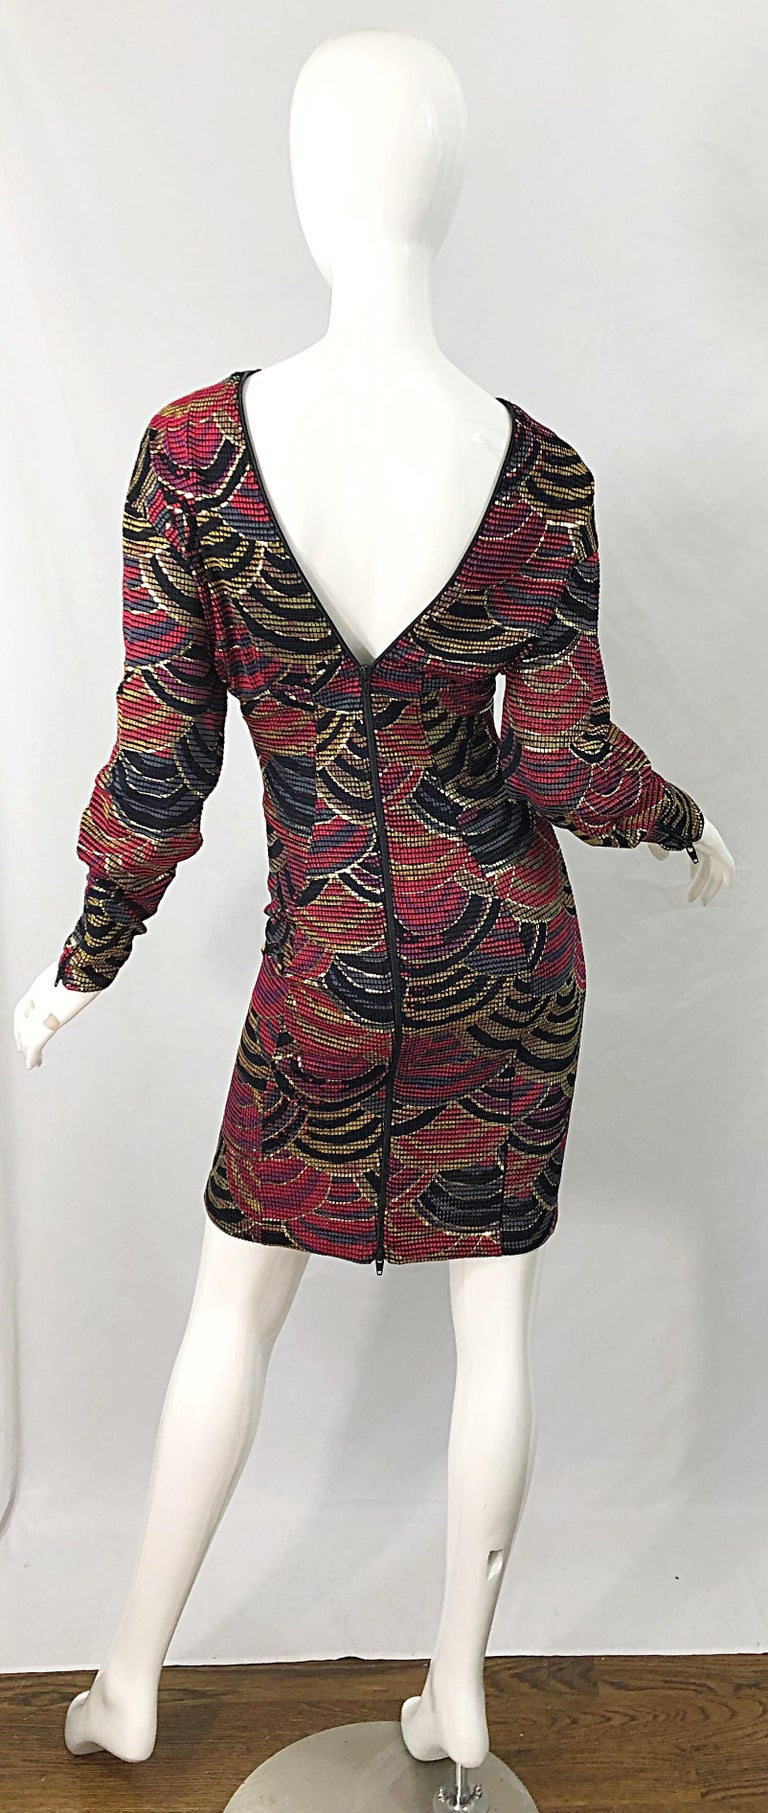 1980s Hand Painted Reversible Red + Gold + Green Vintage 80s Avant Garde Dress For Sale 4